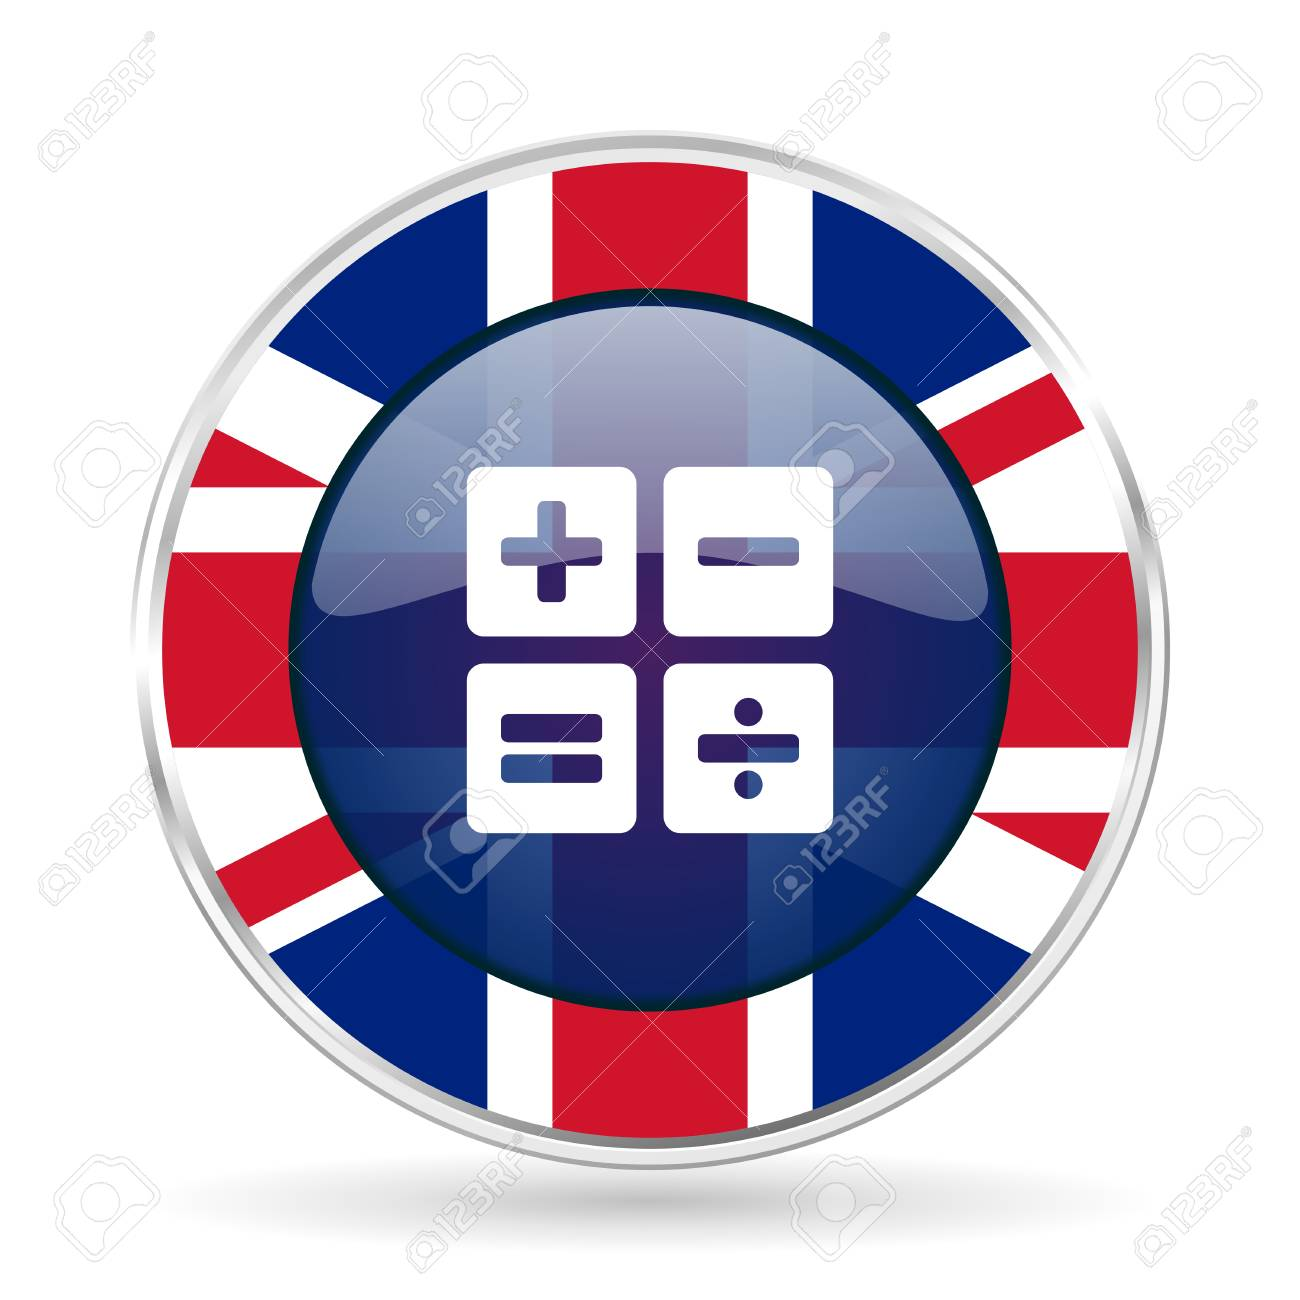 calculator british design icon - round silver metallic border button with Great Britain flag